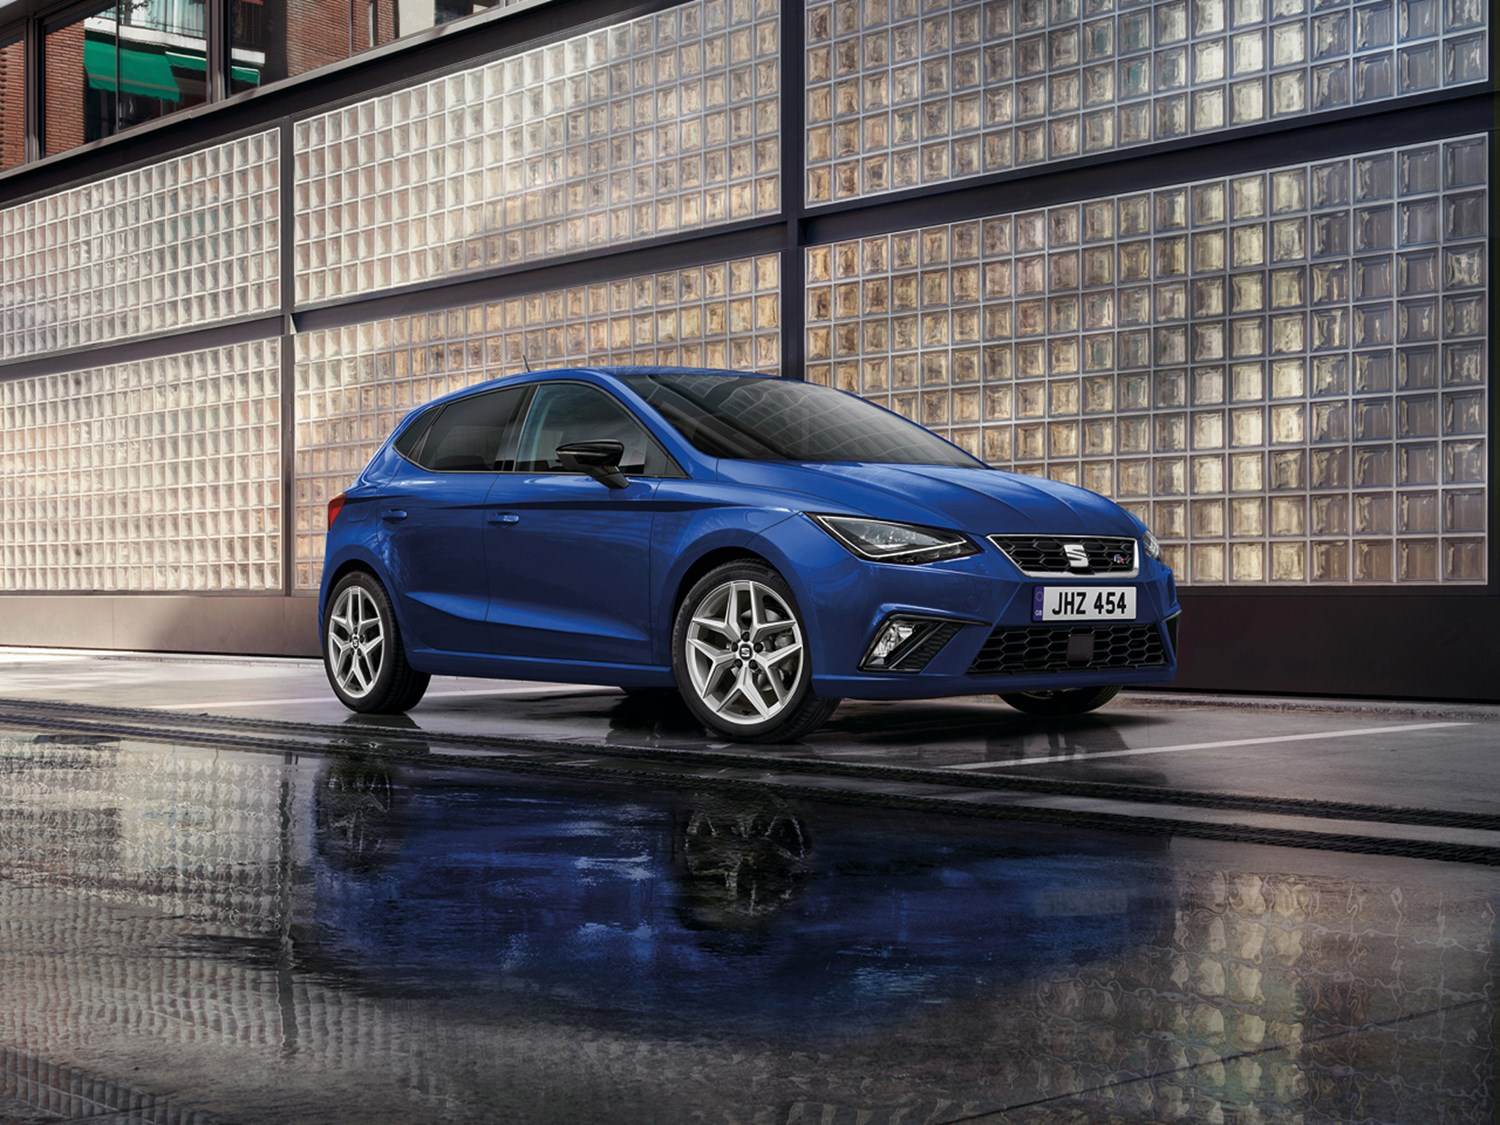 New SEAT Ibiza in blue